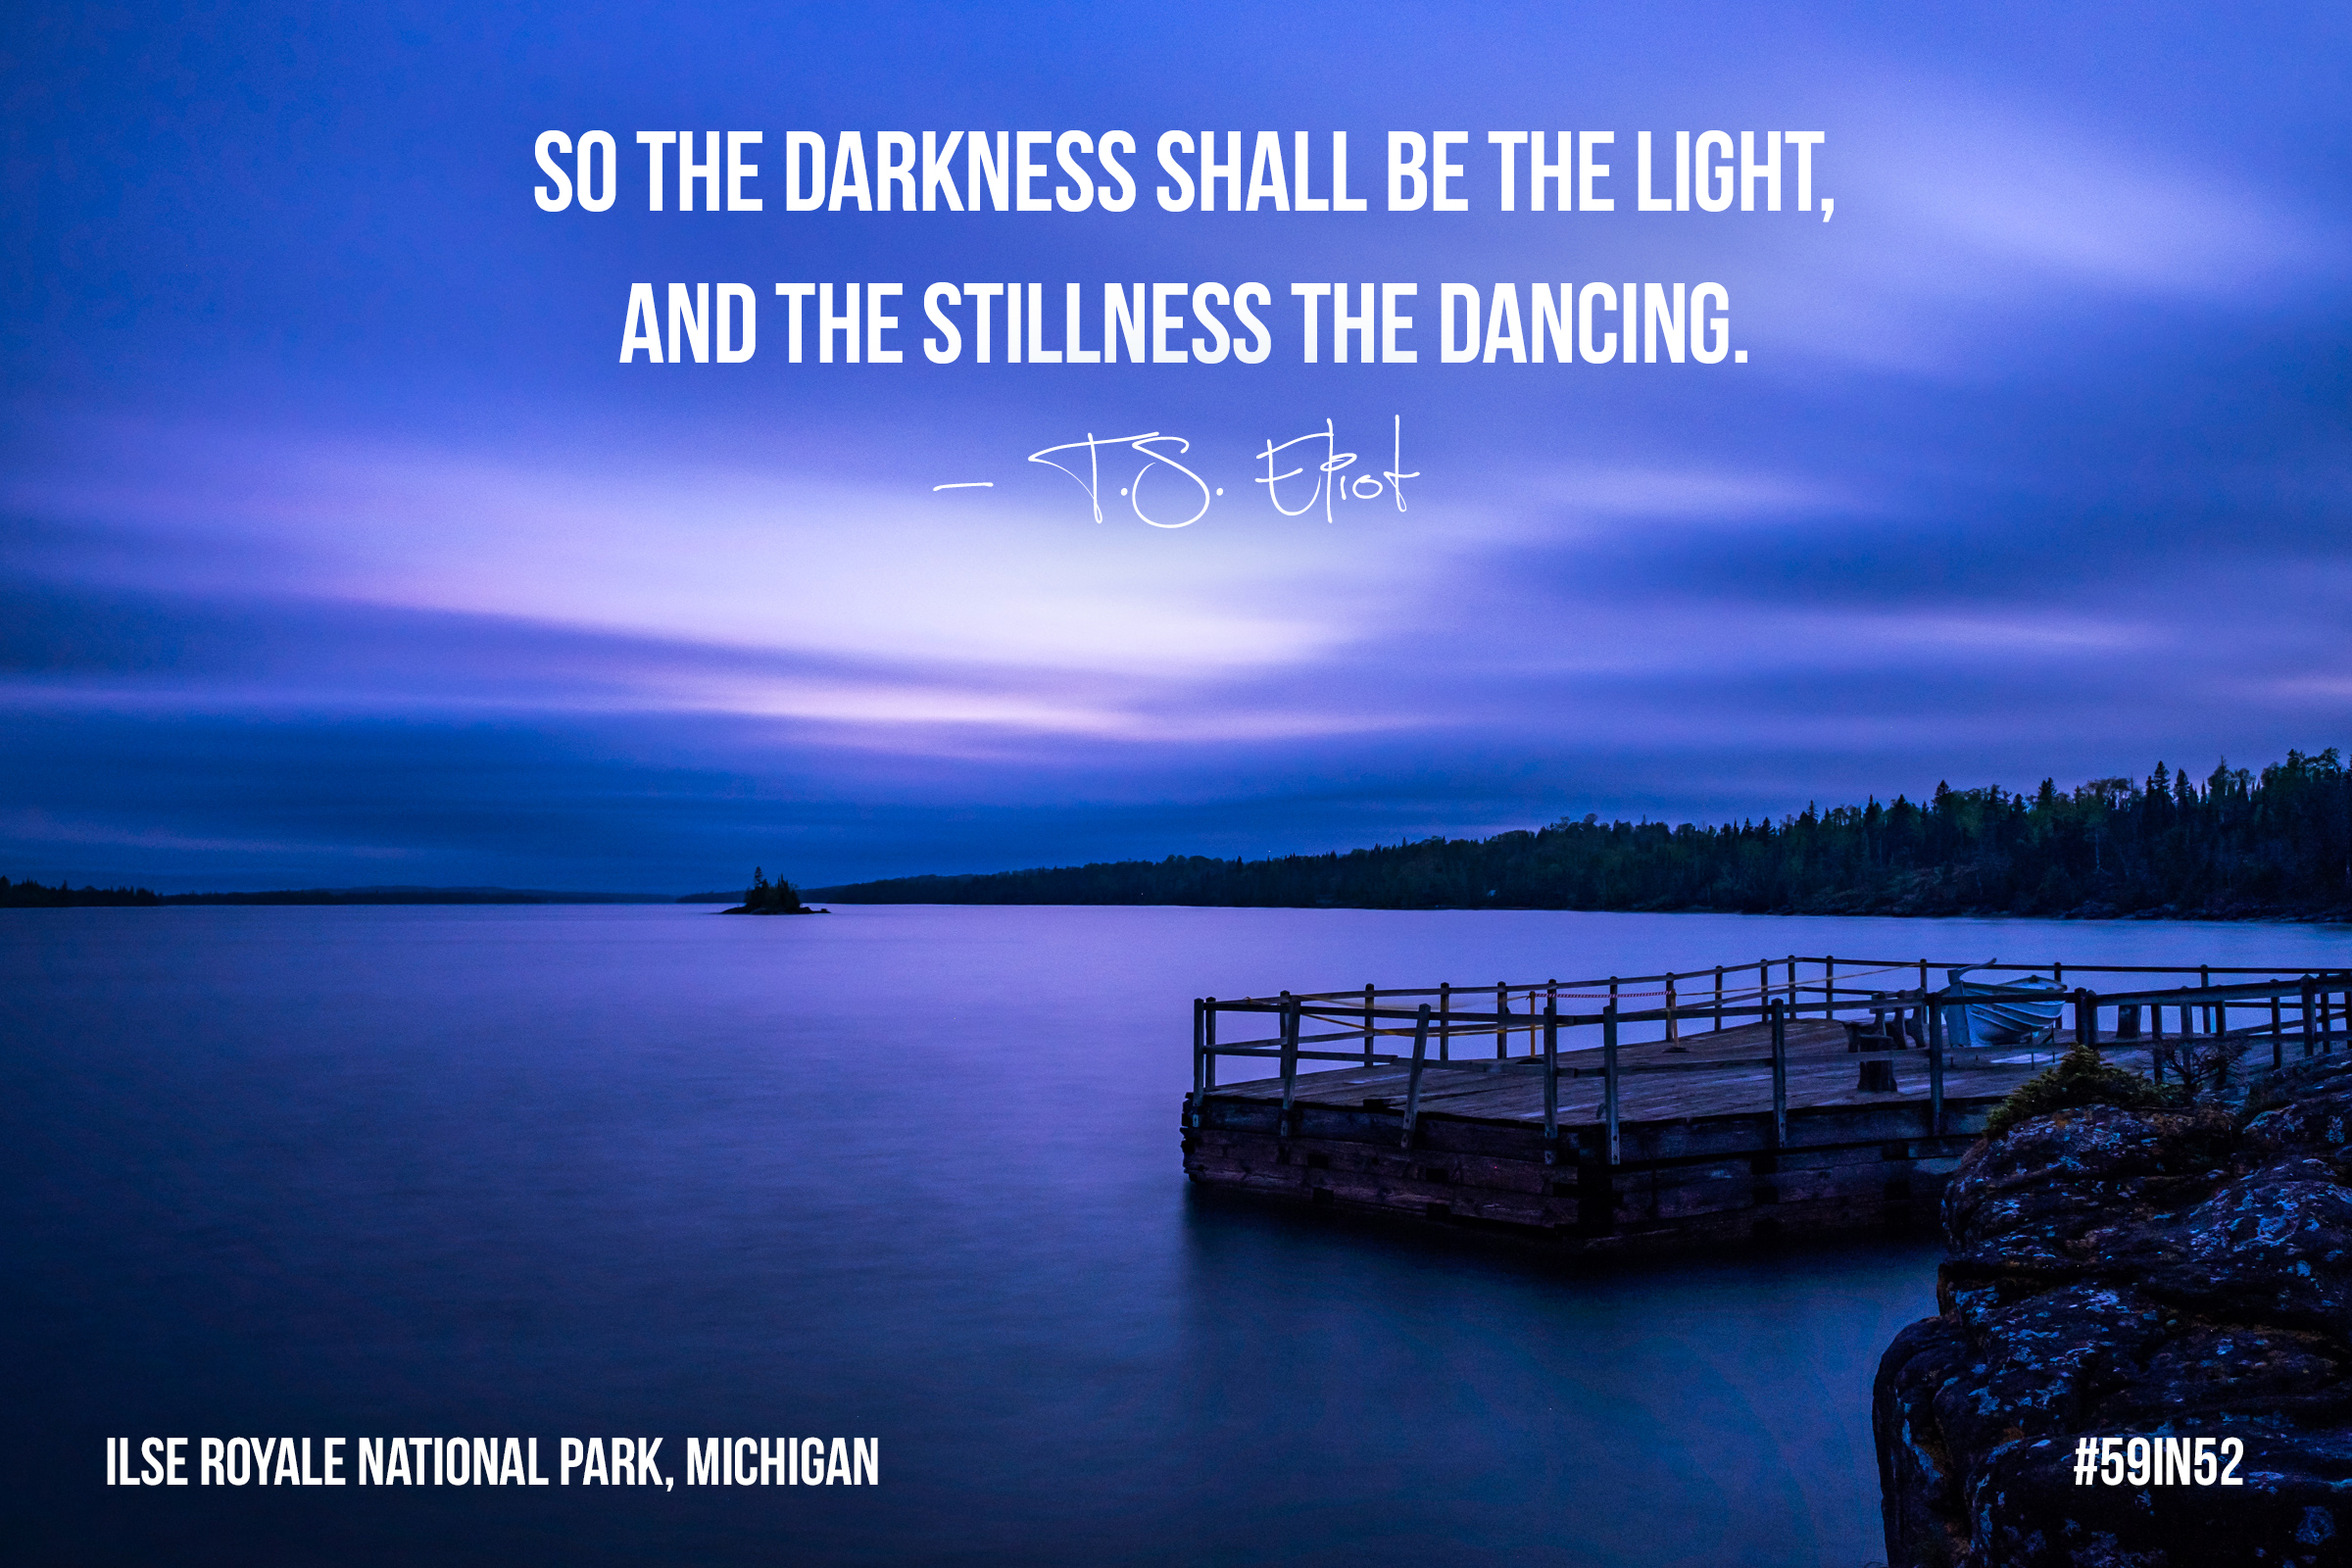 """So the darkness shall be the light and the stillness the dancing."" - T.S. Eliot"